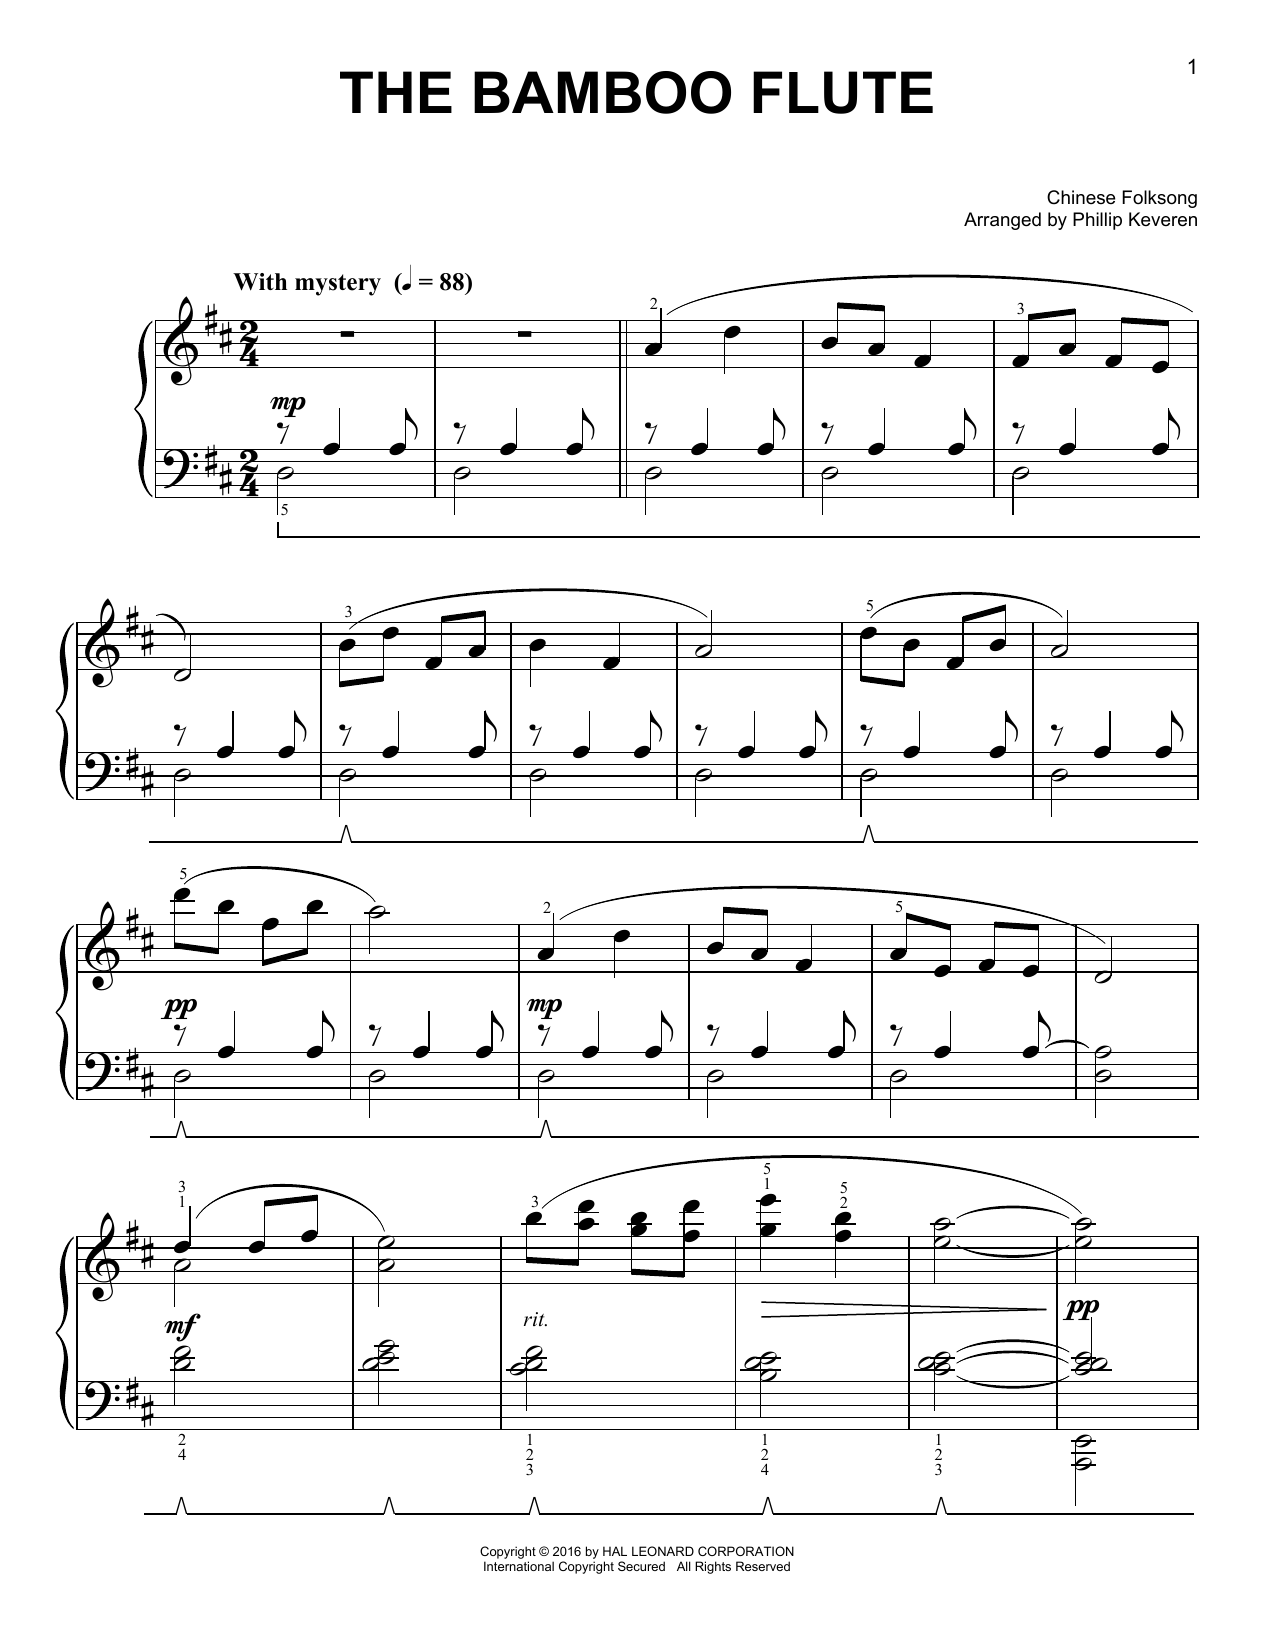 The Bamboo Flute Sheet Music